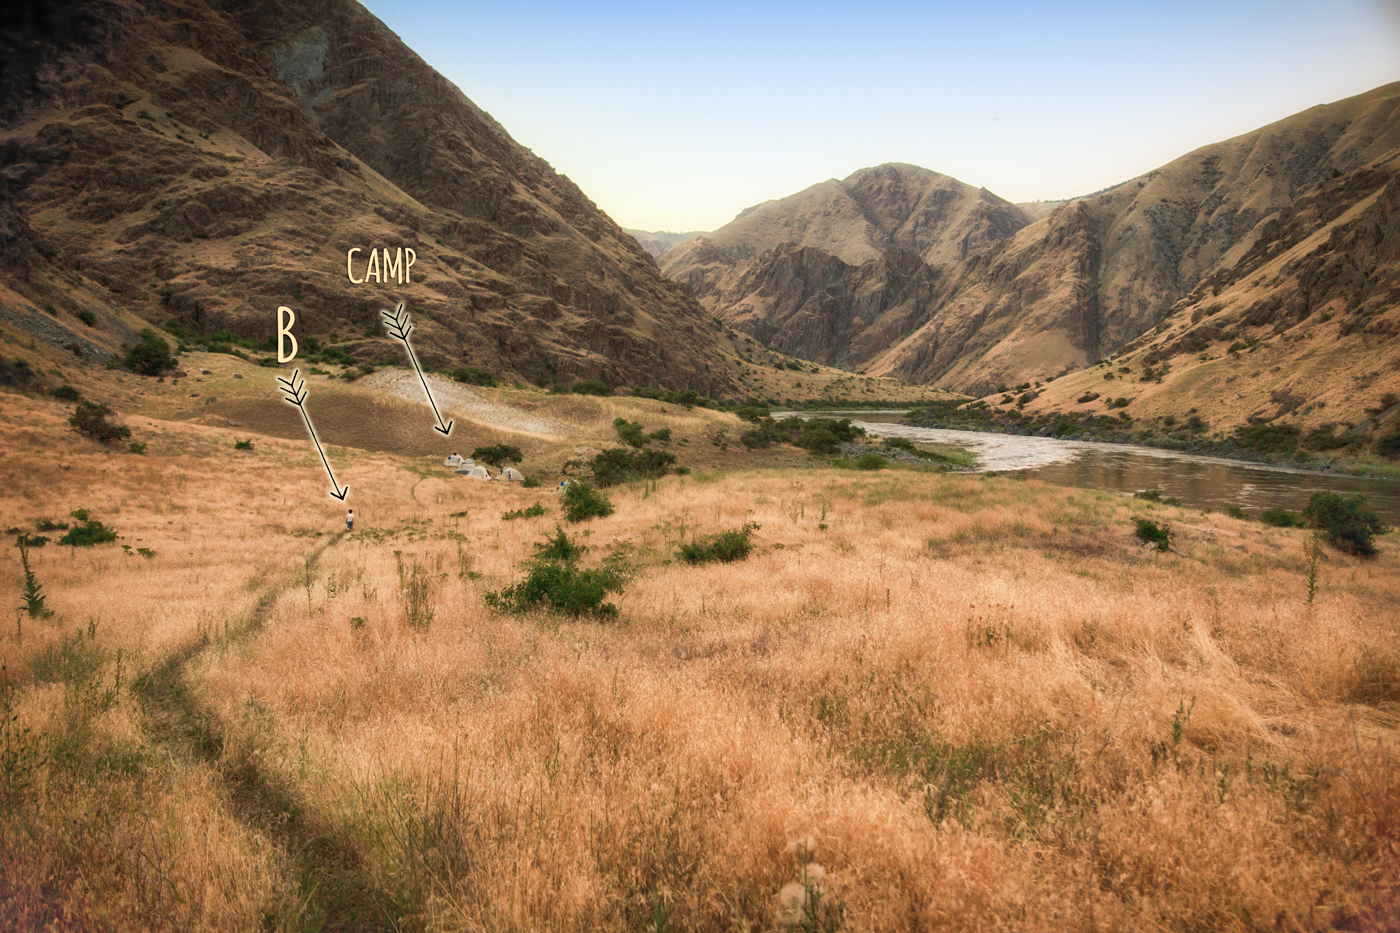 Camping along the Snake River in Hells Canyon with Hells Canyon Raft via J5MM.com